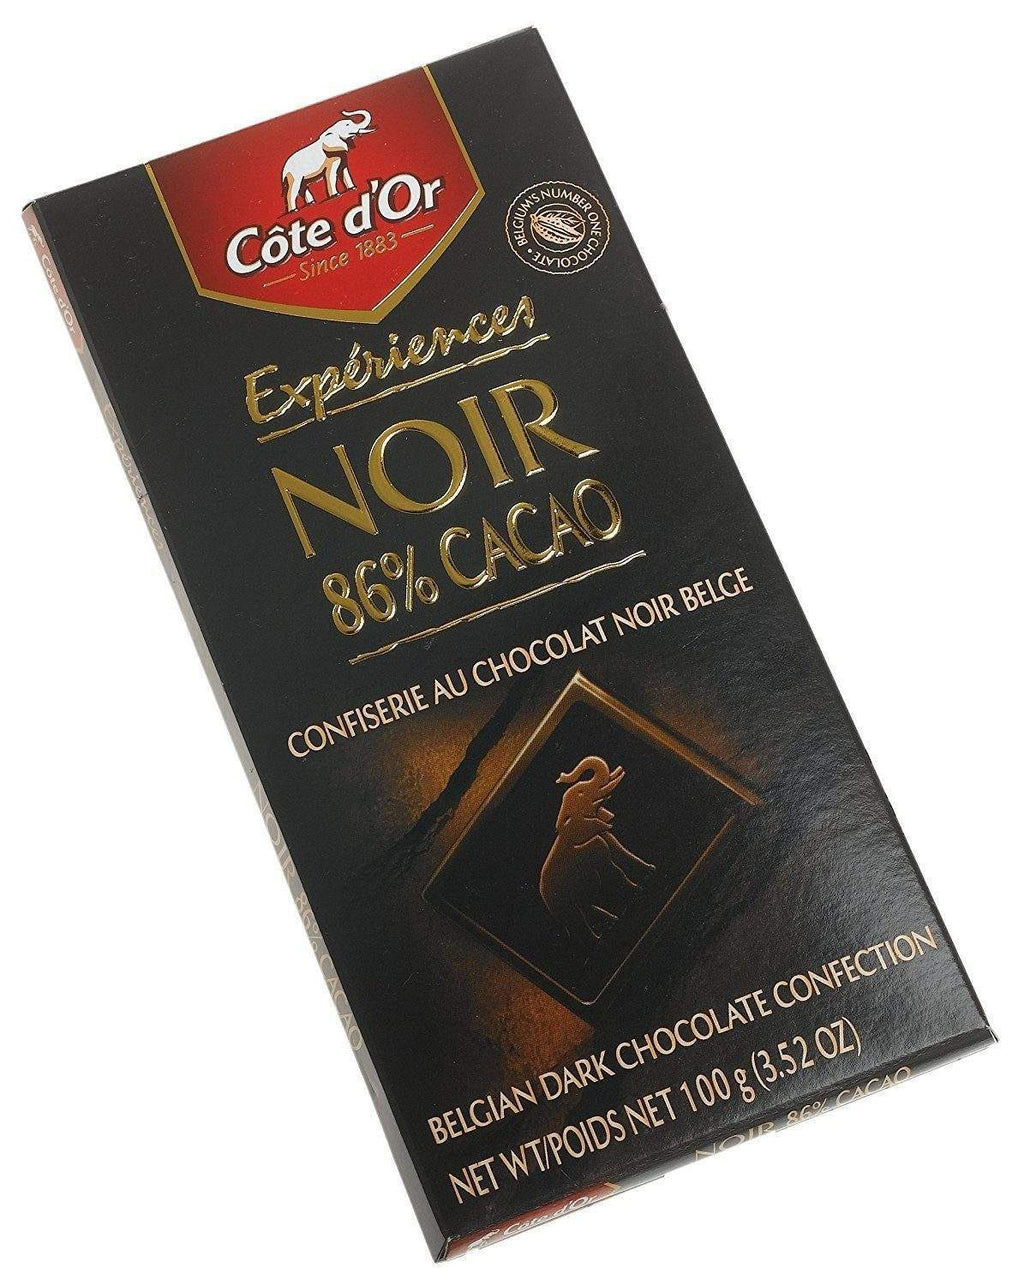 Cote D'or Dark (86%) Brut Chocolate Cocoa